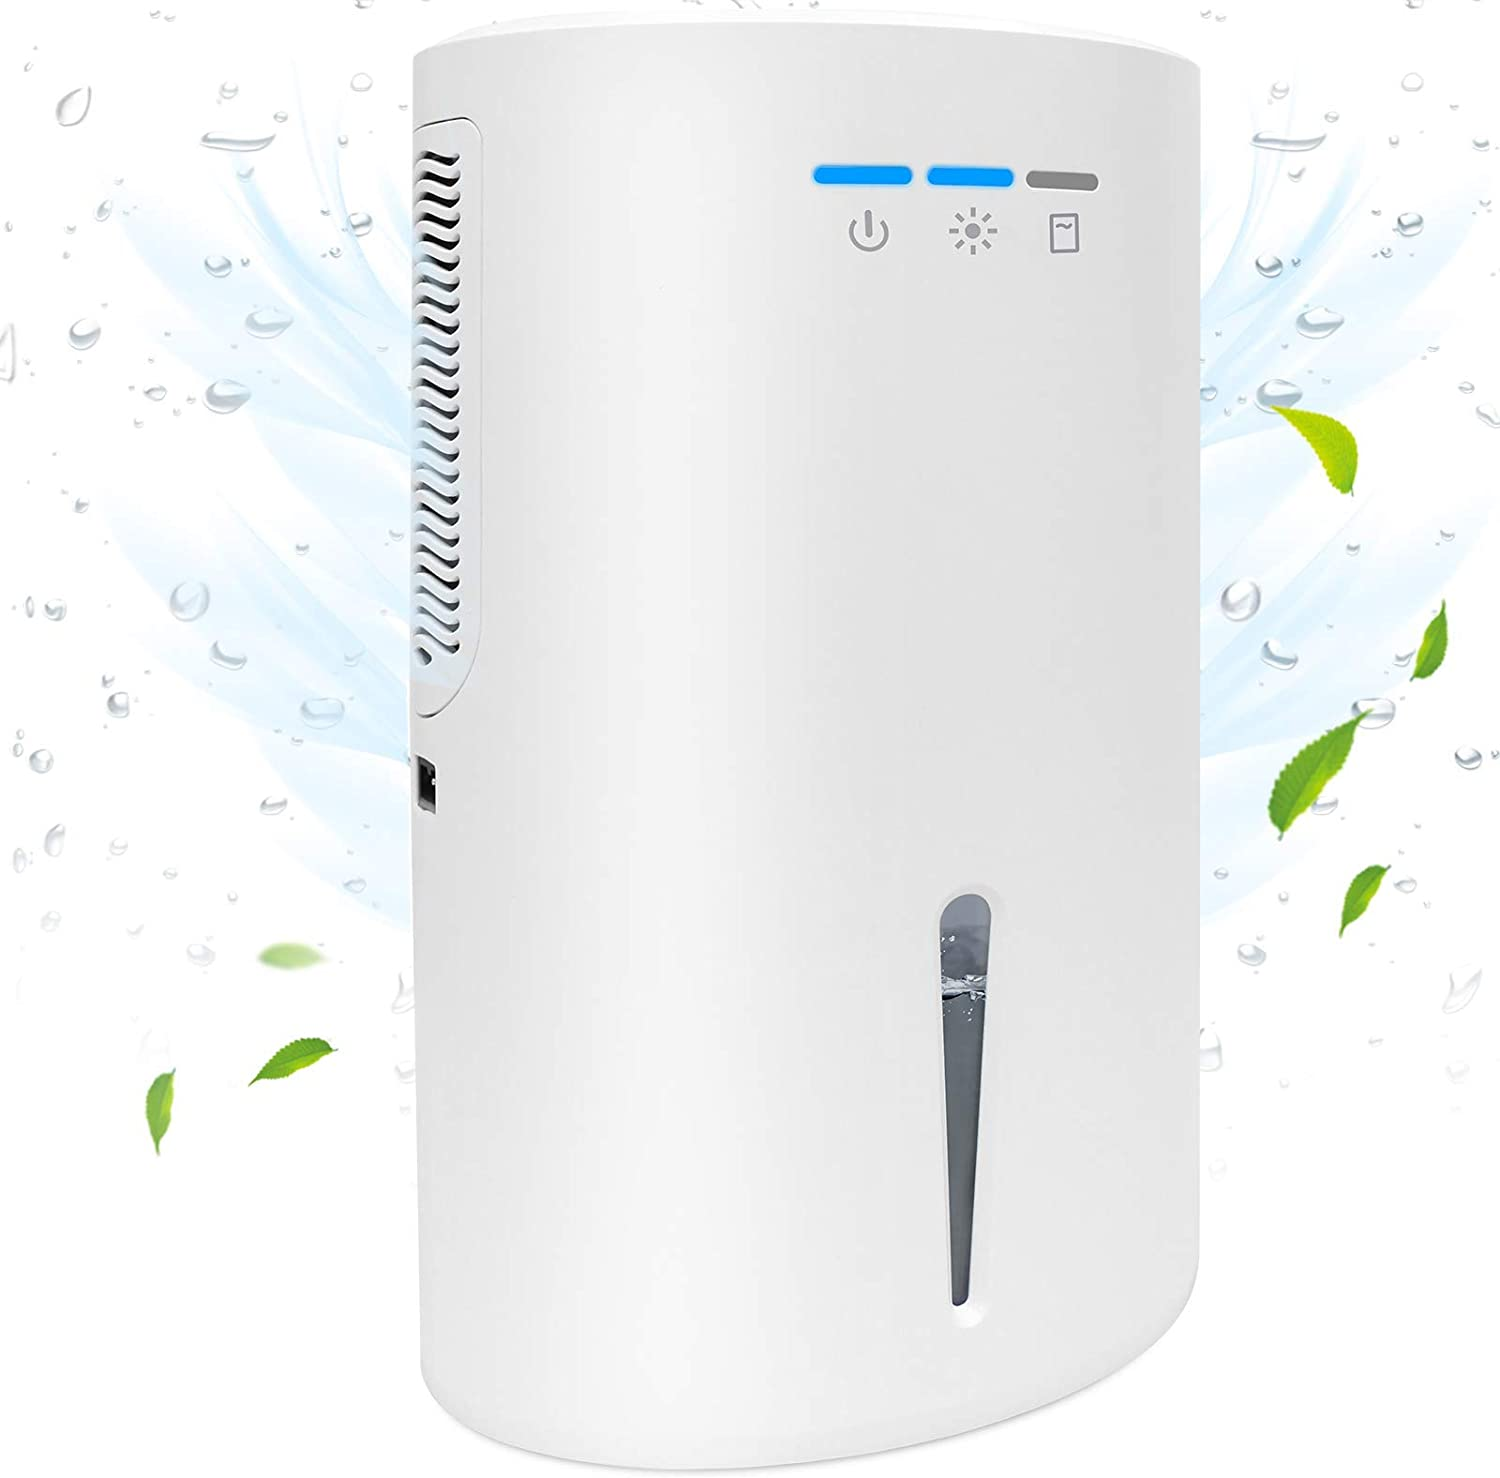 Letsport Dedication Upgraded 68oz Dehumidifier for Home Po Up Luxury Ft to Sq 480